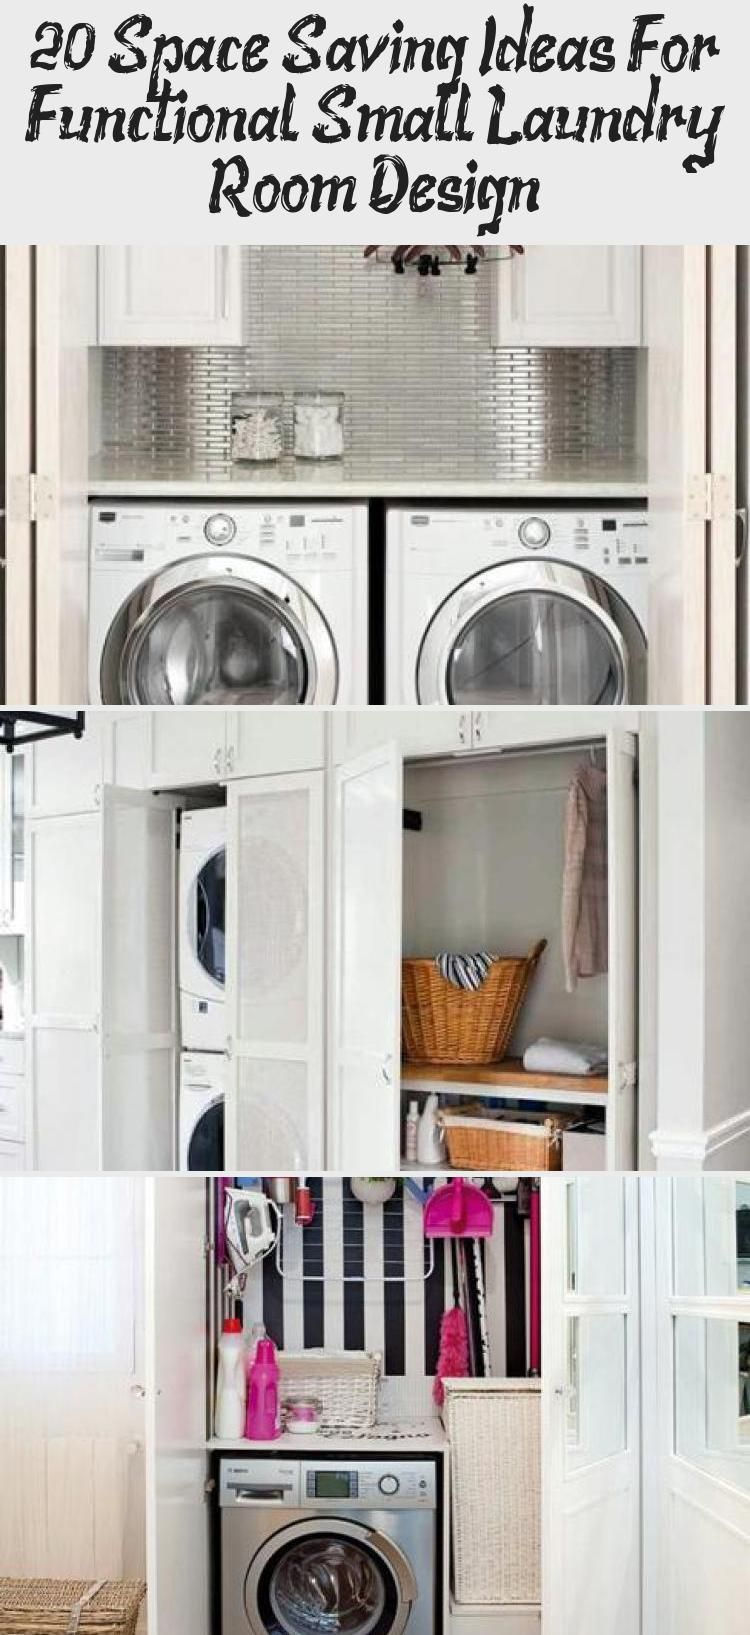 20 Space Saving Ideas For Functional Small Laundry Room Design Ideas Small Laundry Small Laundry Room Small Laundry Rooms